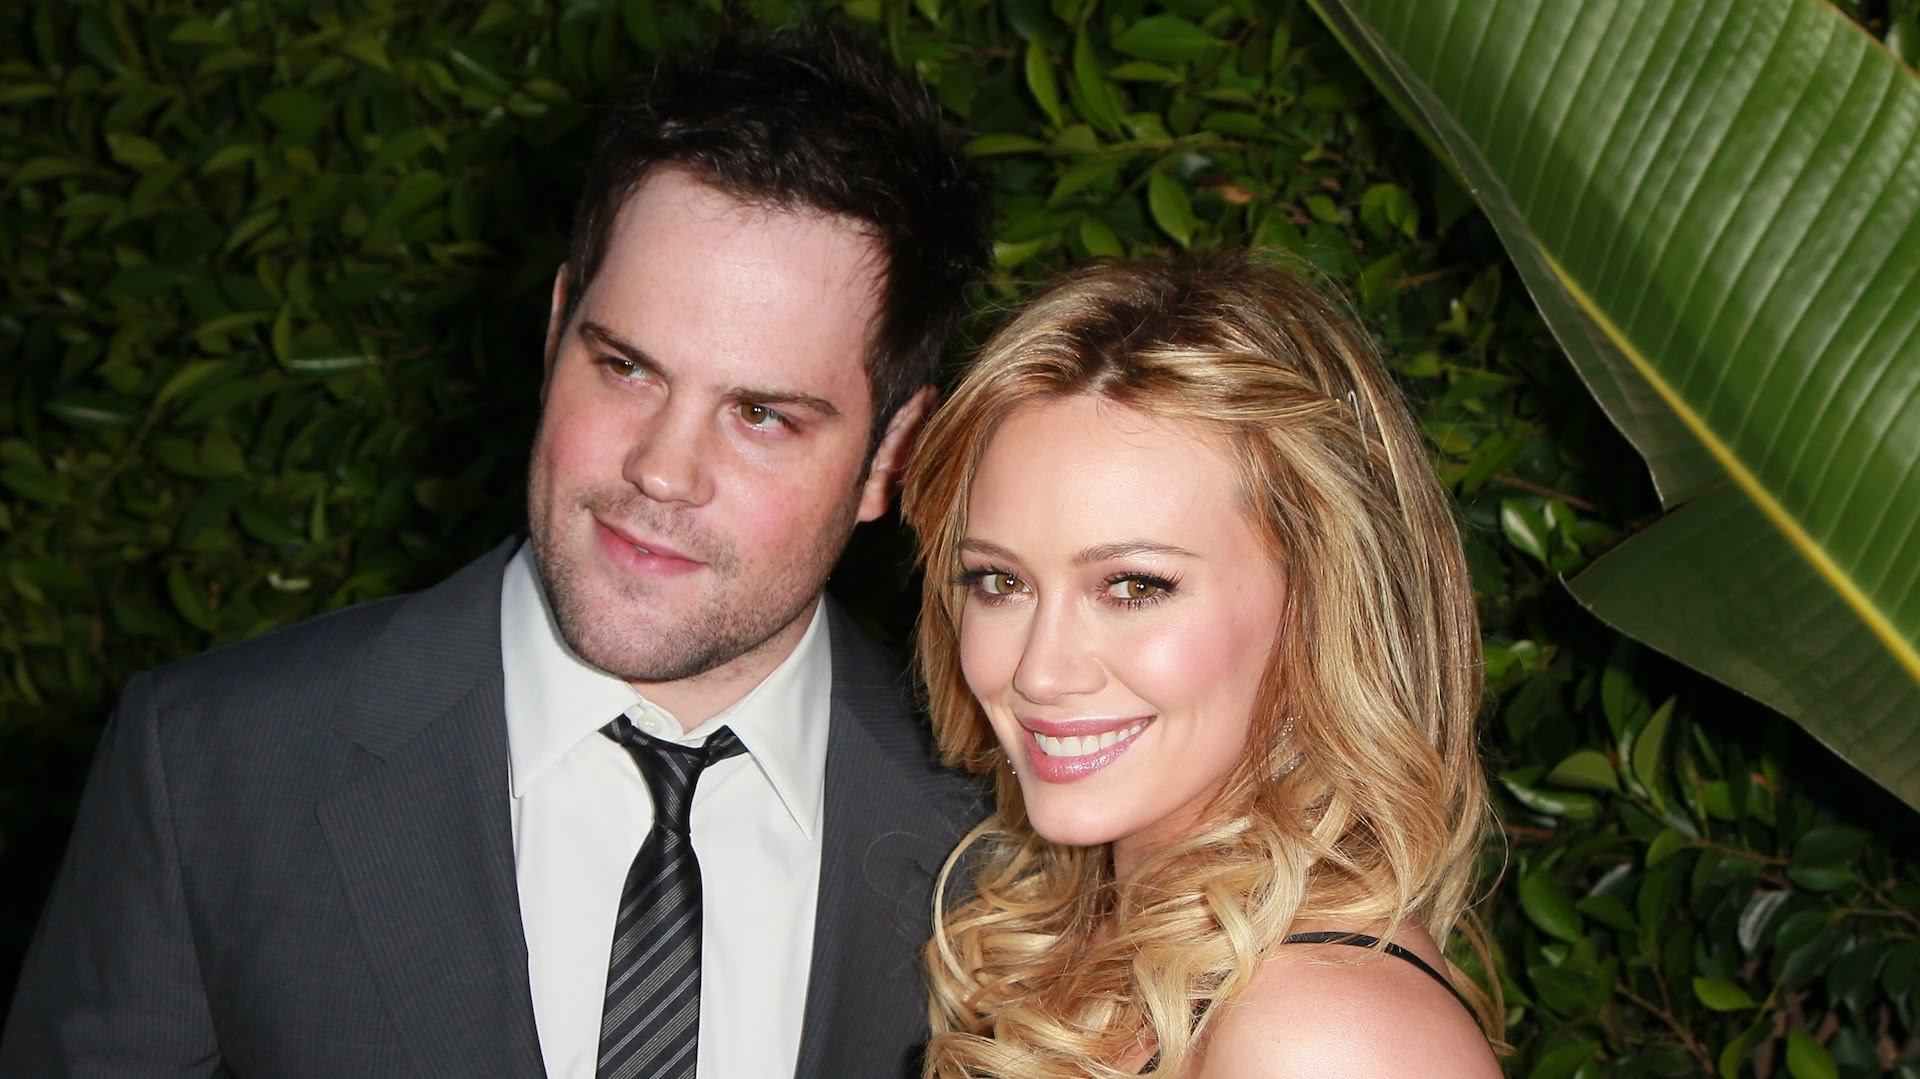 hilary duff mike comrie divorce celebrity gossip images 2014